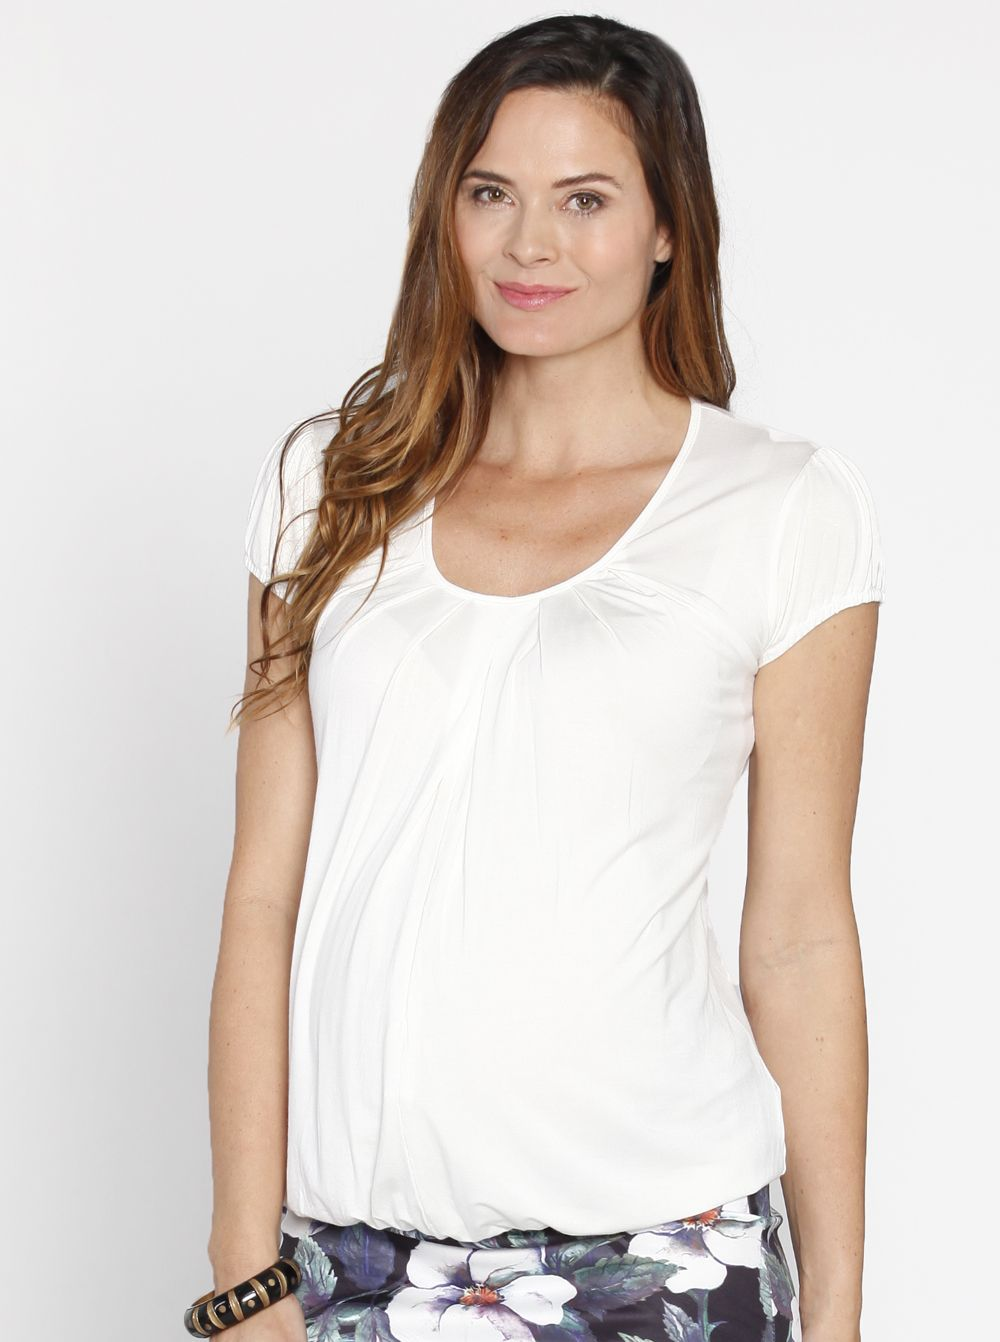 b7c7fc617d9dc Hidden Zipper Nursing Top in White, $39.95, has a concealed centre front  opening for